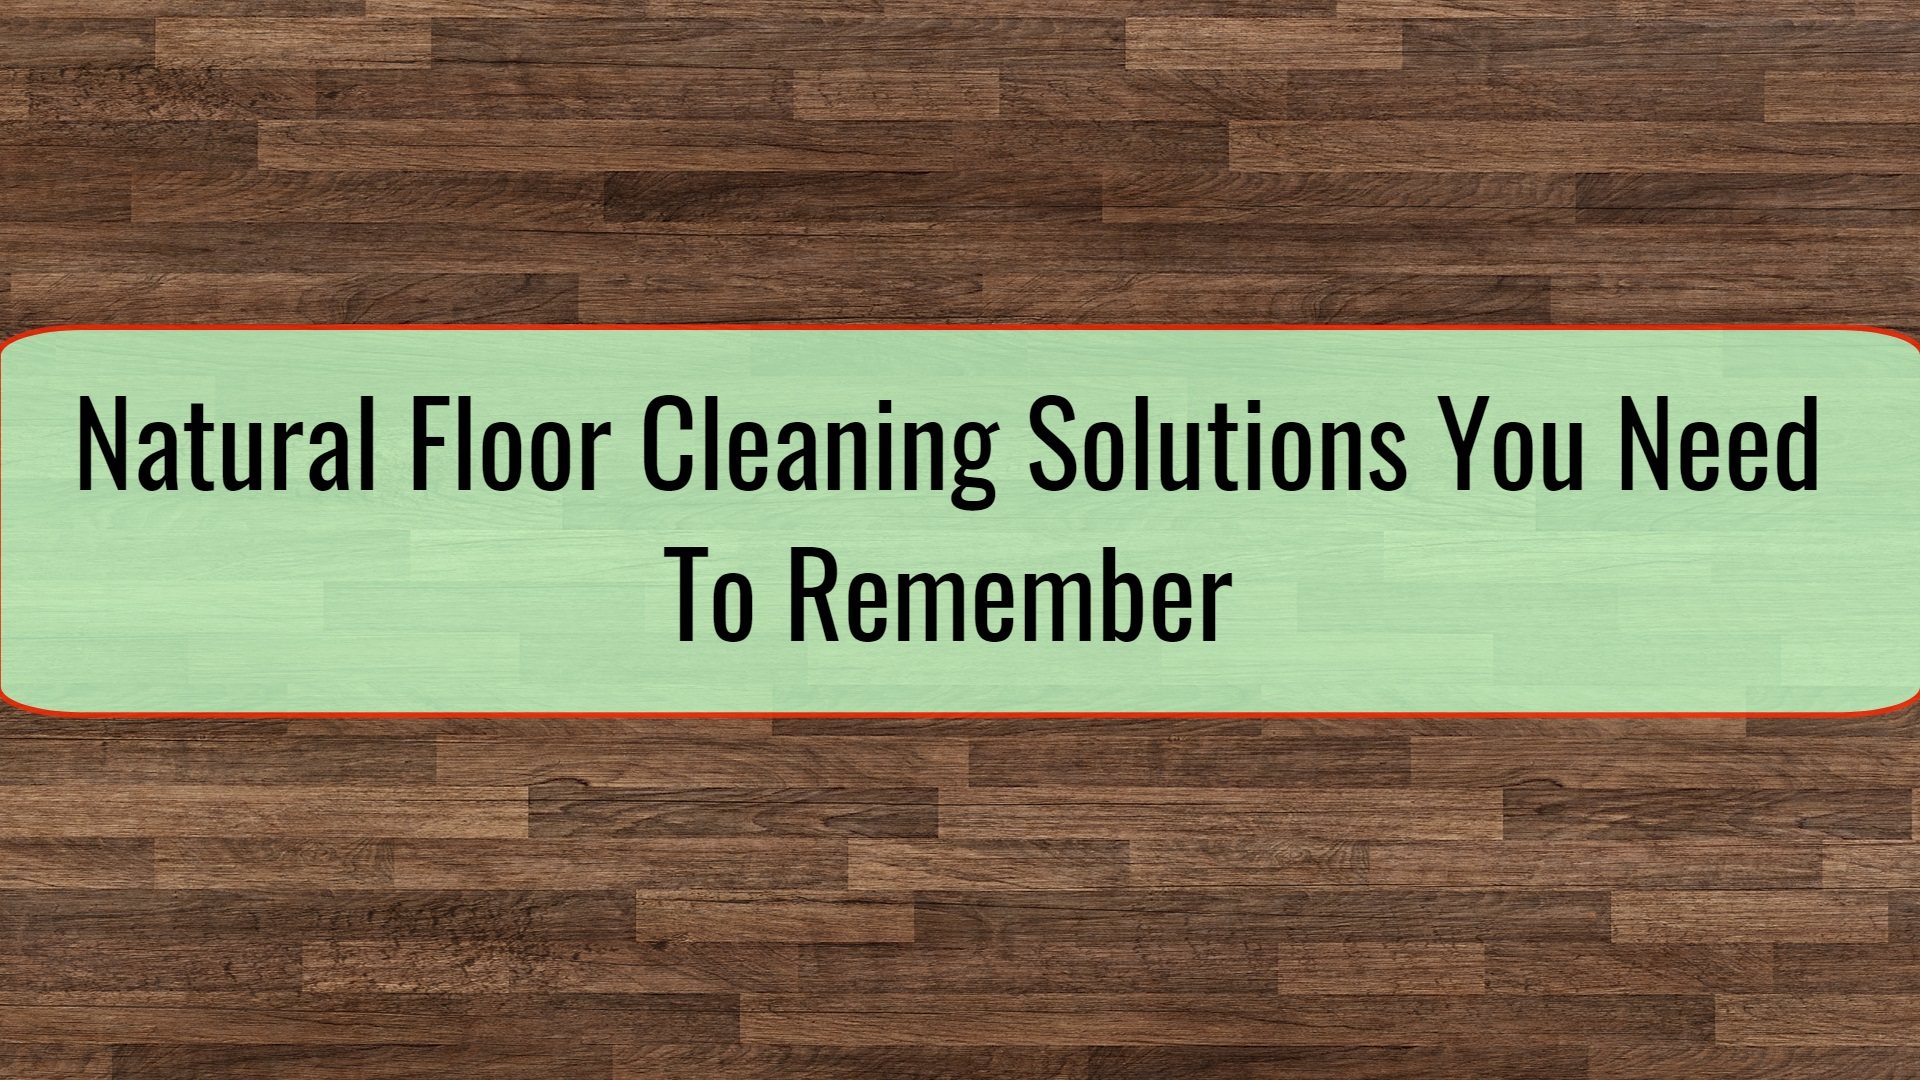 Natural Floor Cleaning Solutions You